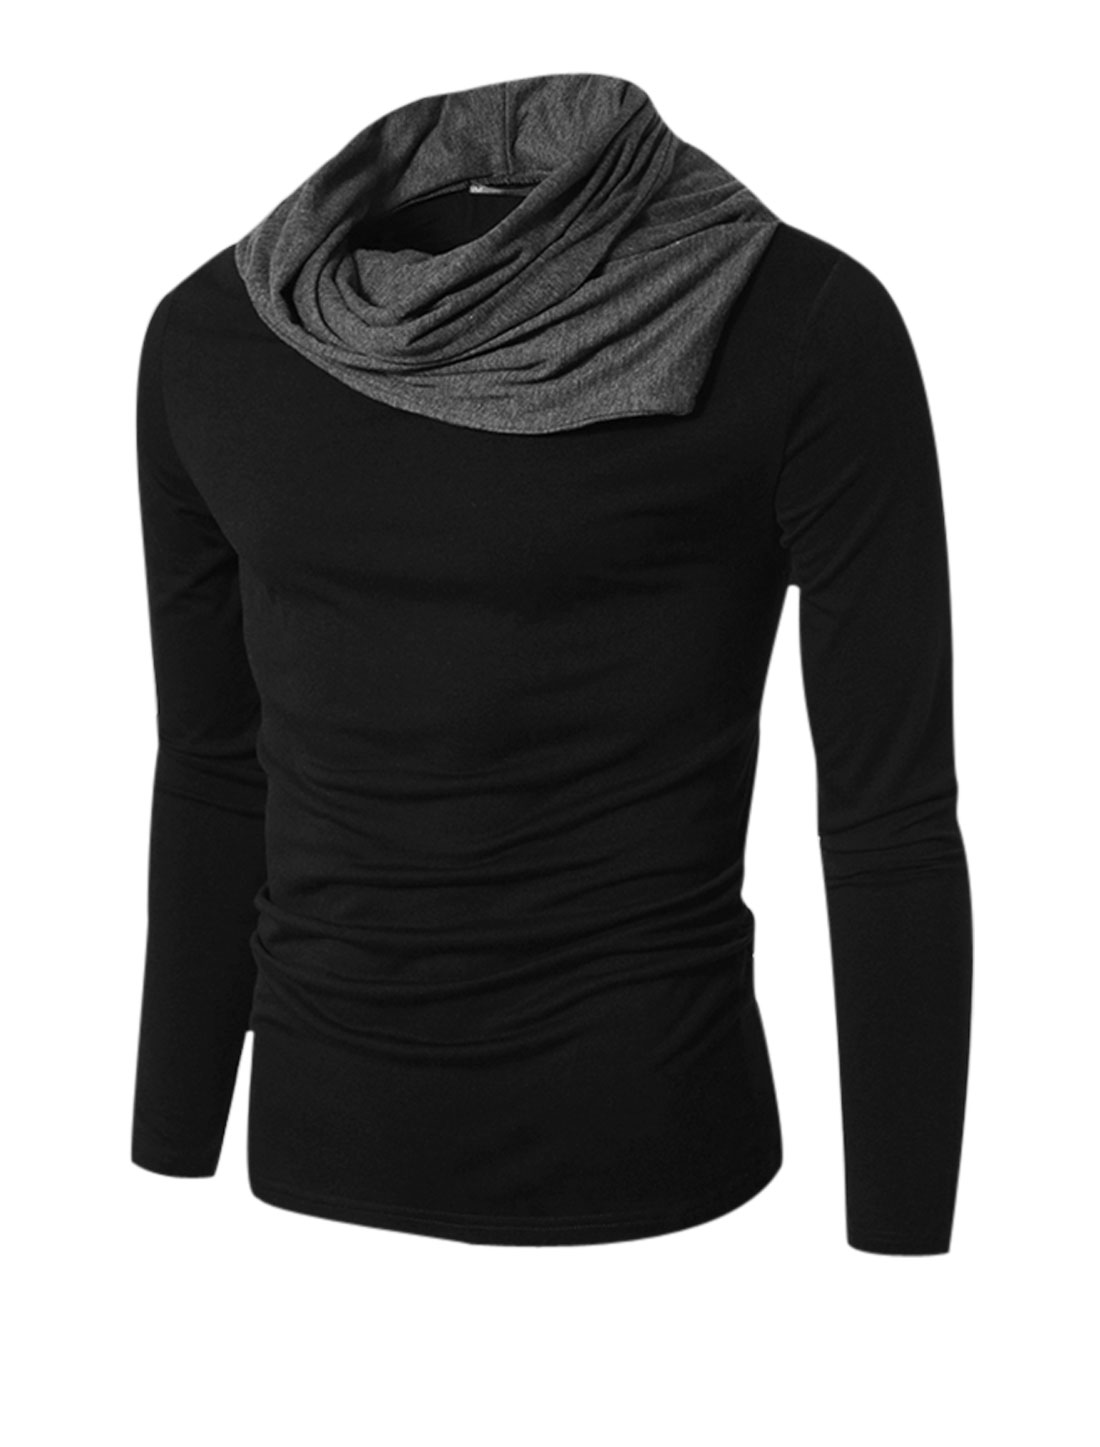 Men Turtle Neck Long Sleeve Casual Design T-Shirt Black M